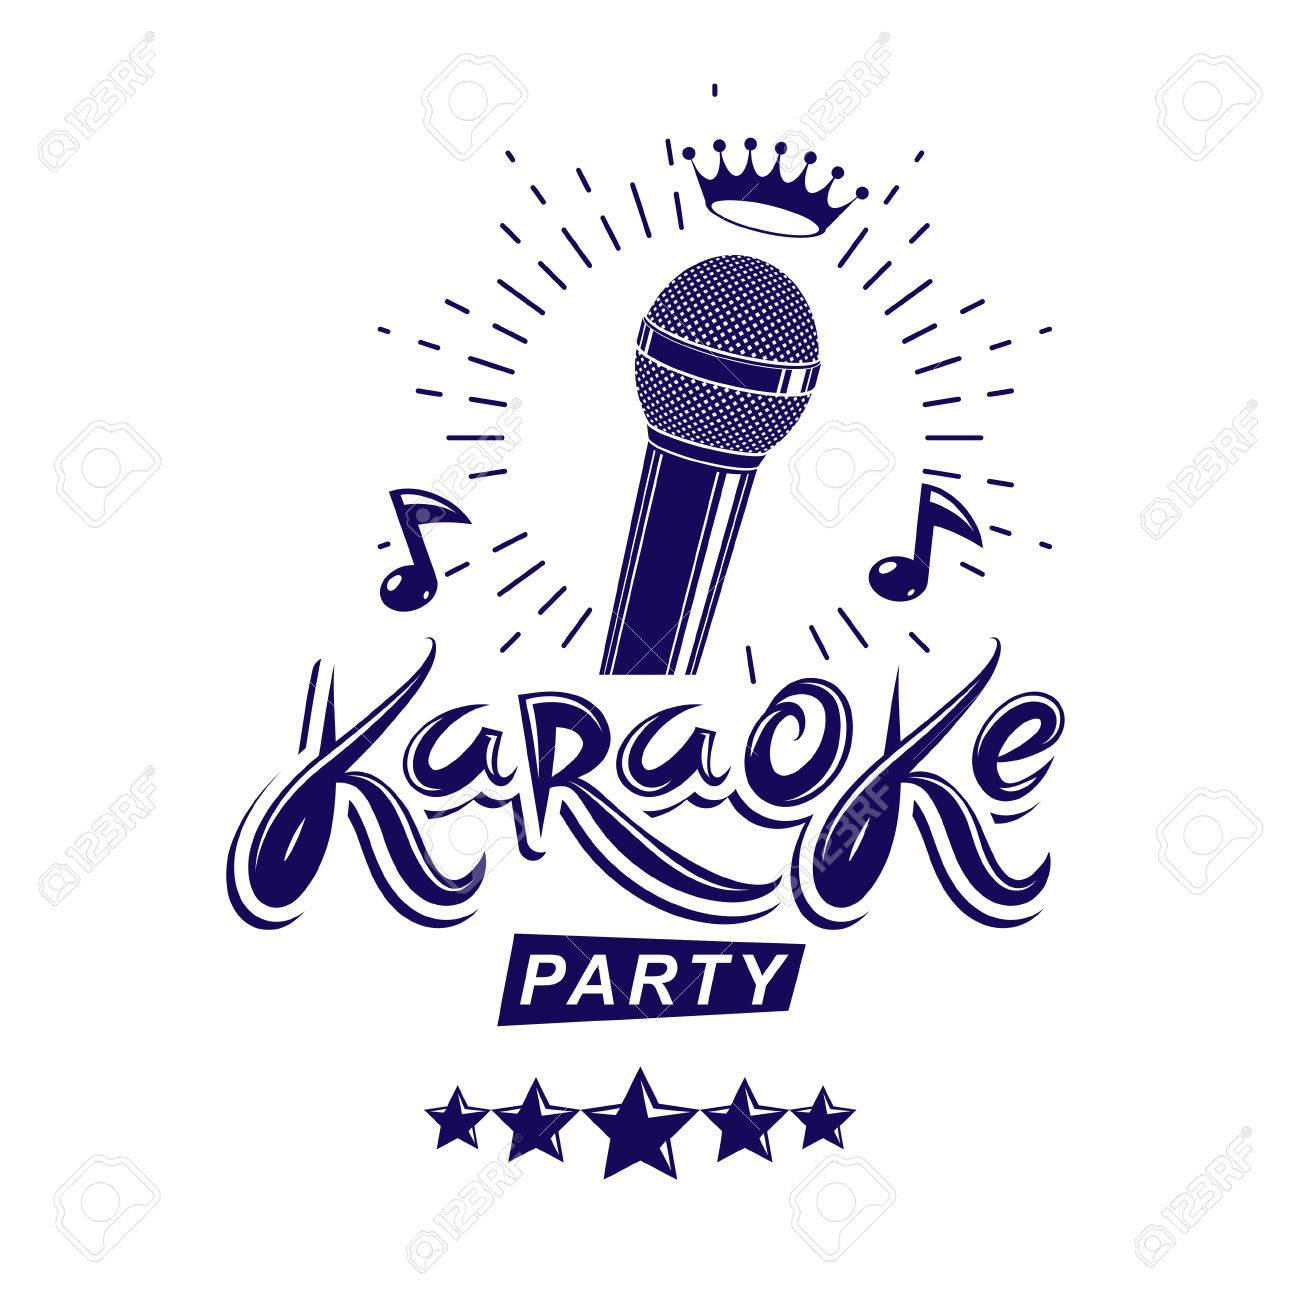 Karaoke Party Invitation Poster, Live Music Vector Concert ...